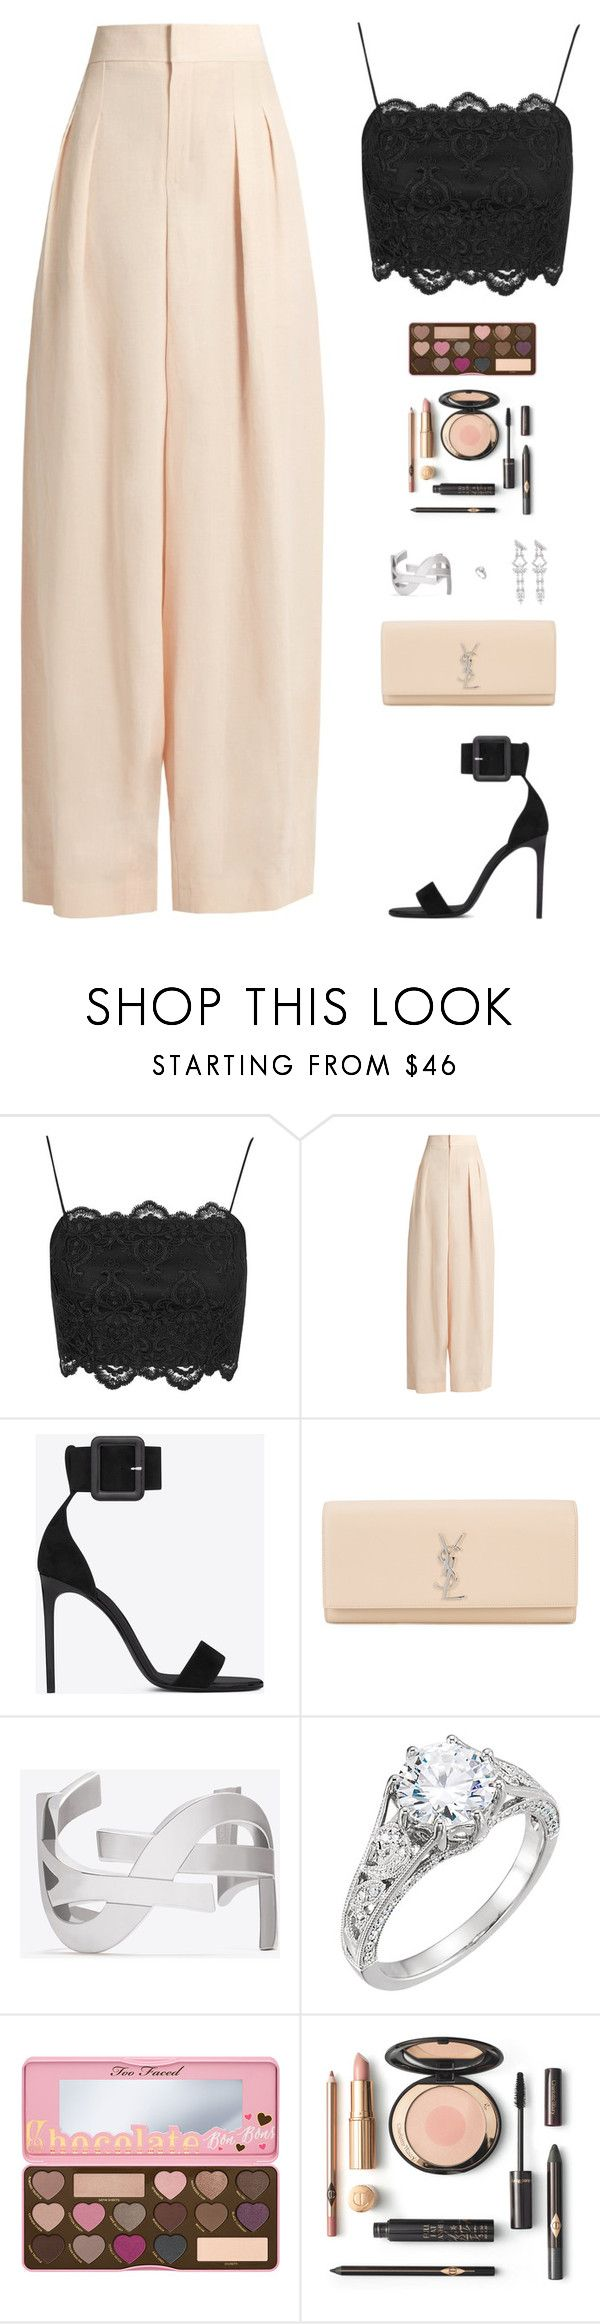 """Sin título #4773"" by mdmsb on Polyvore featuring moda, Topshop, Chloé, Yves Saint Laurent y Too Faced Cosmetics"